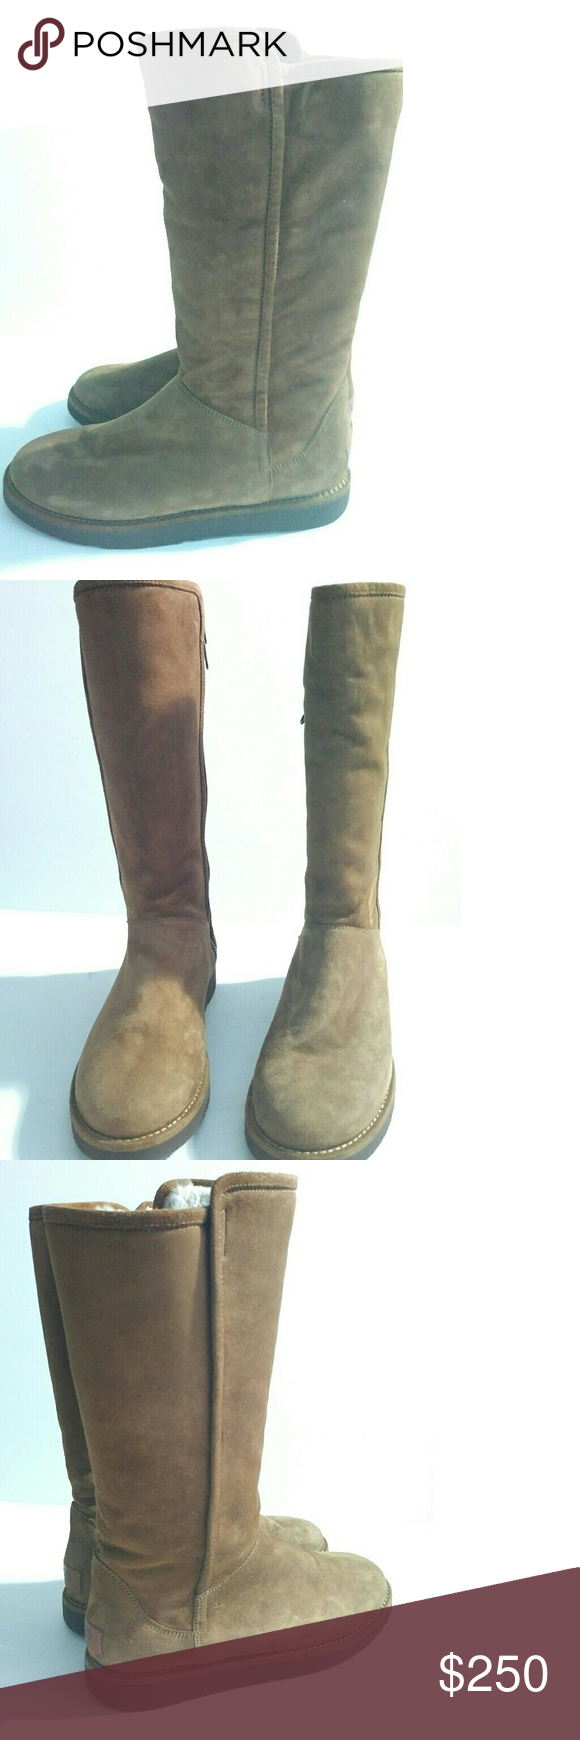 e8ff0fb8aa9 UGG abree tall made in italy sheepskin boots 8 UGG made in italy ...